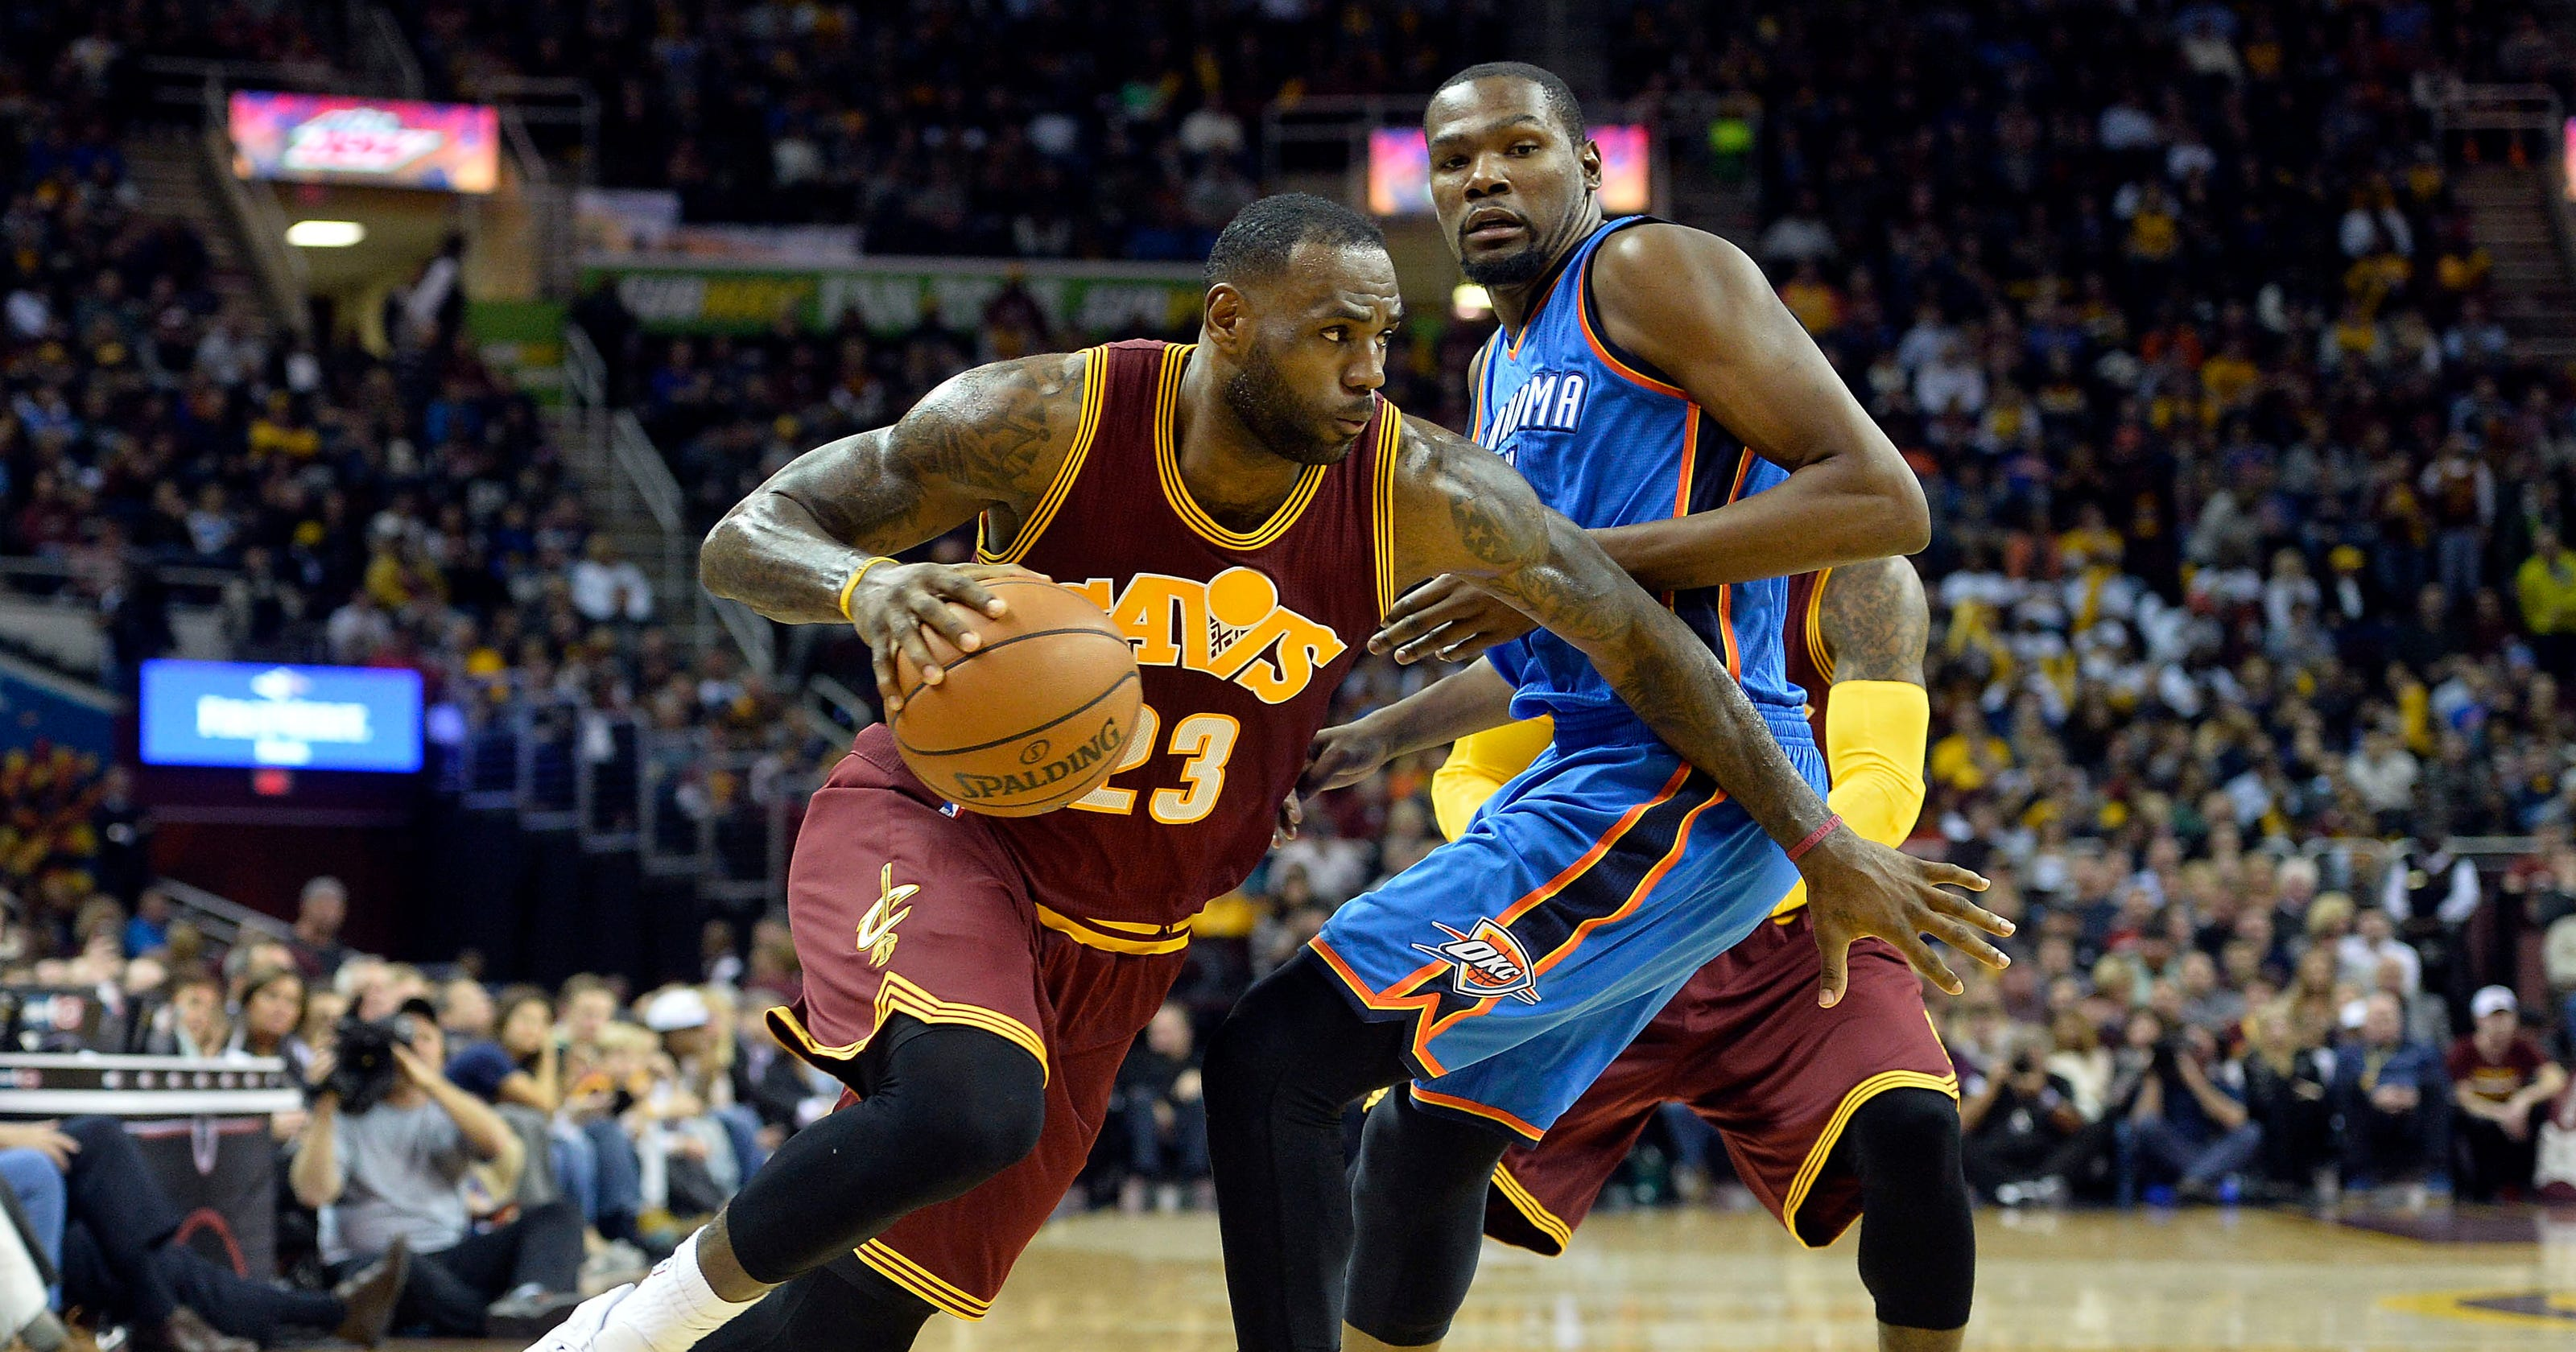 d22a0f7a588 Cavaliers top Thunder after LeBron James plows into crowd